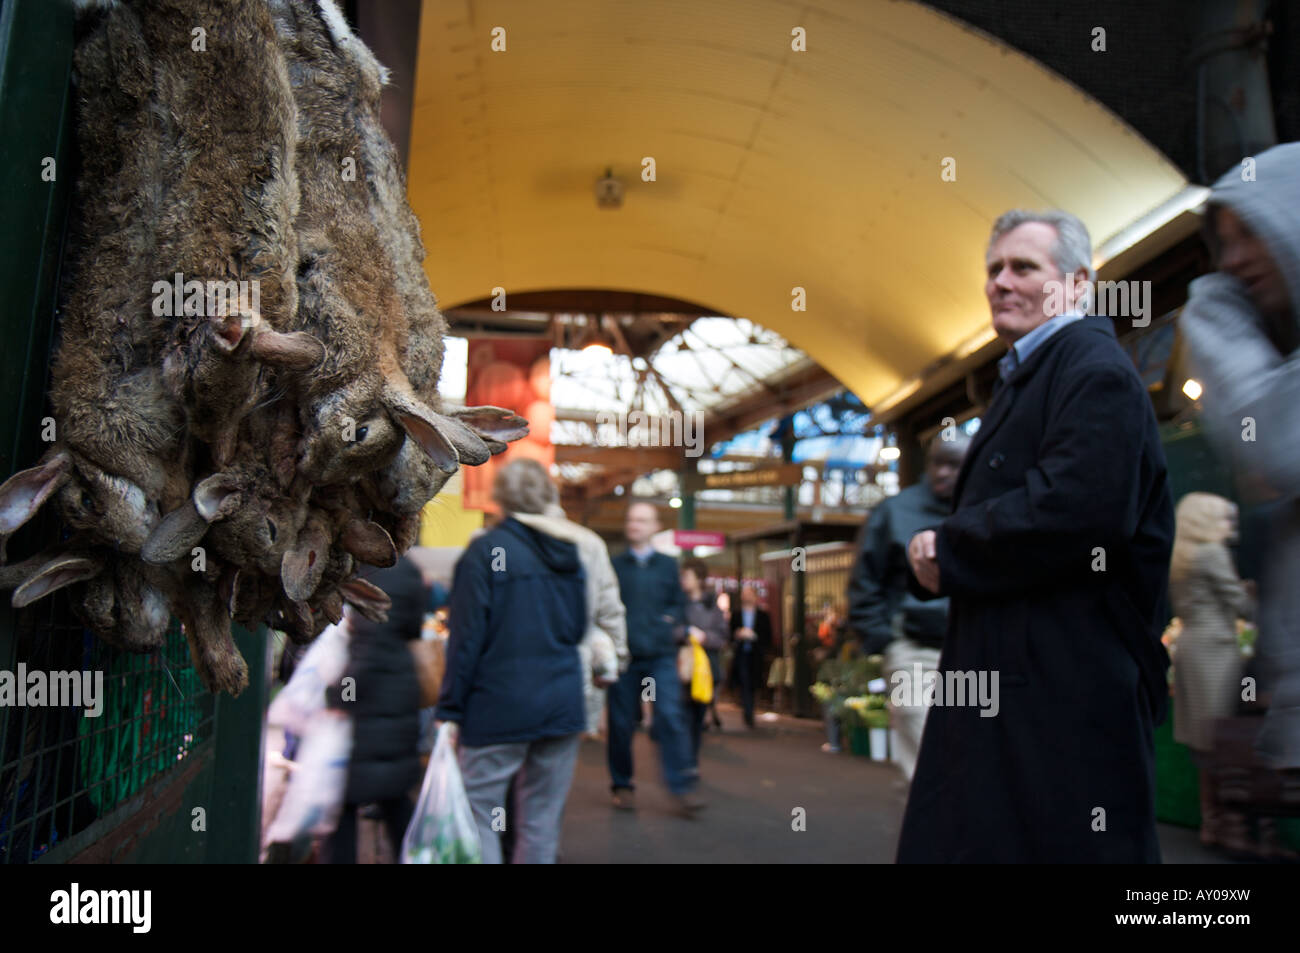 Hares strung up for sale in London's Borough market whilst a man looks on in the background - Stock Image